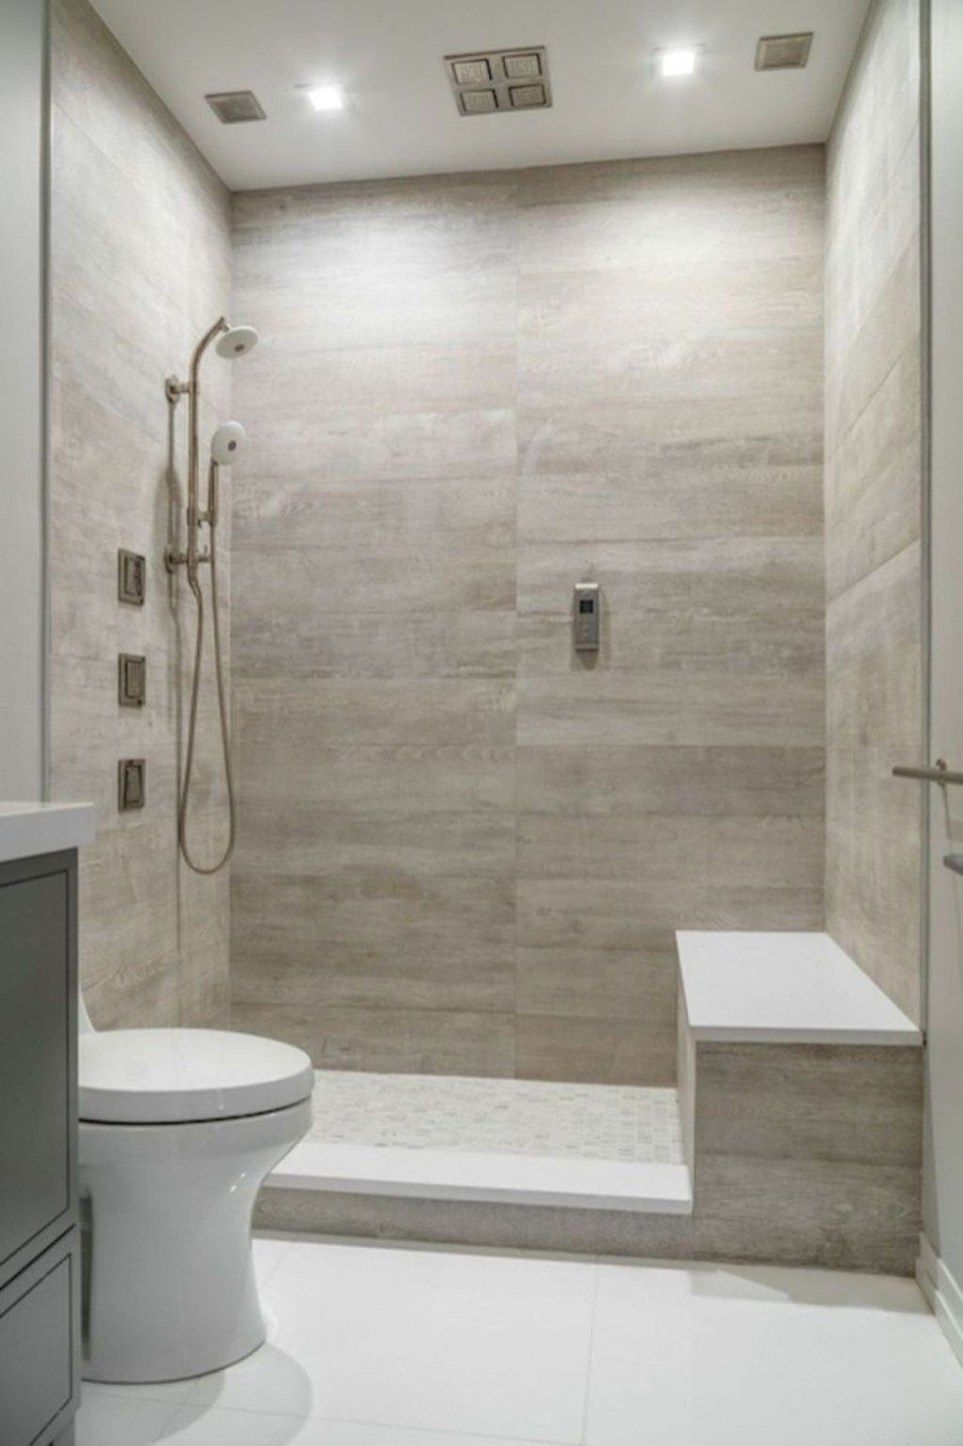 45 Stunning Modern Small Bathroom Design Ideas Bathroom Remodel Shower Best Bathroom Tiles Small Bathroom